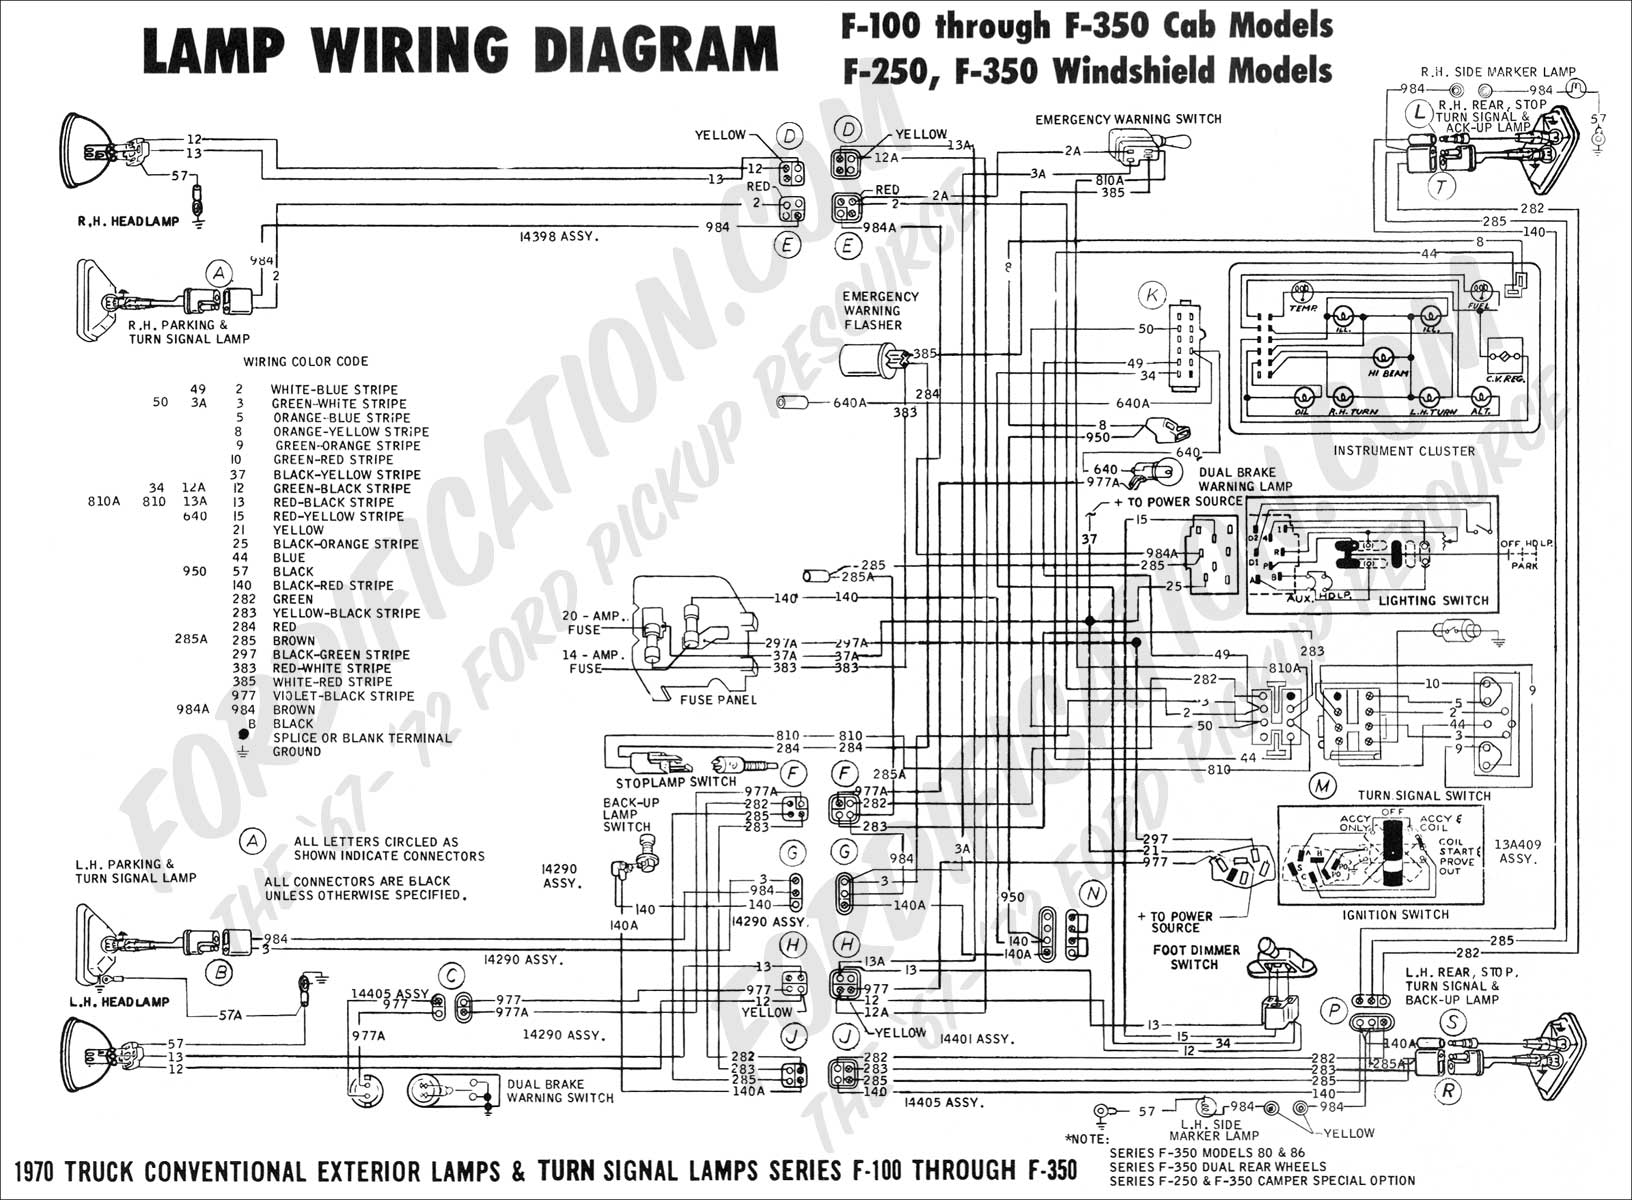 wiring diagram_70ext lights01 ford truck technical drawings and schematics section h wiring 97 f250 tail light wiring diagram at crackthecode.co